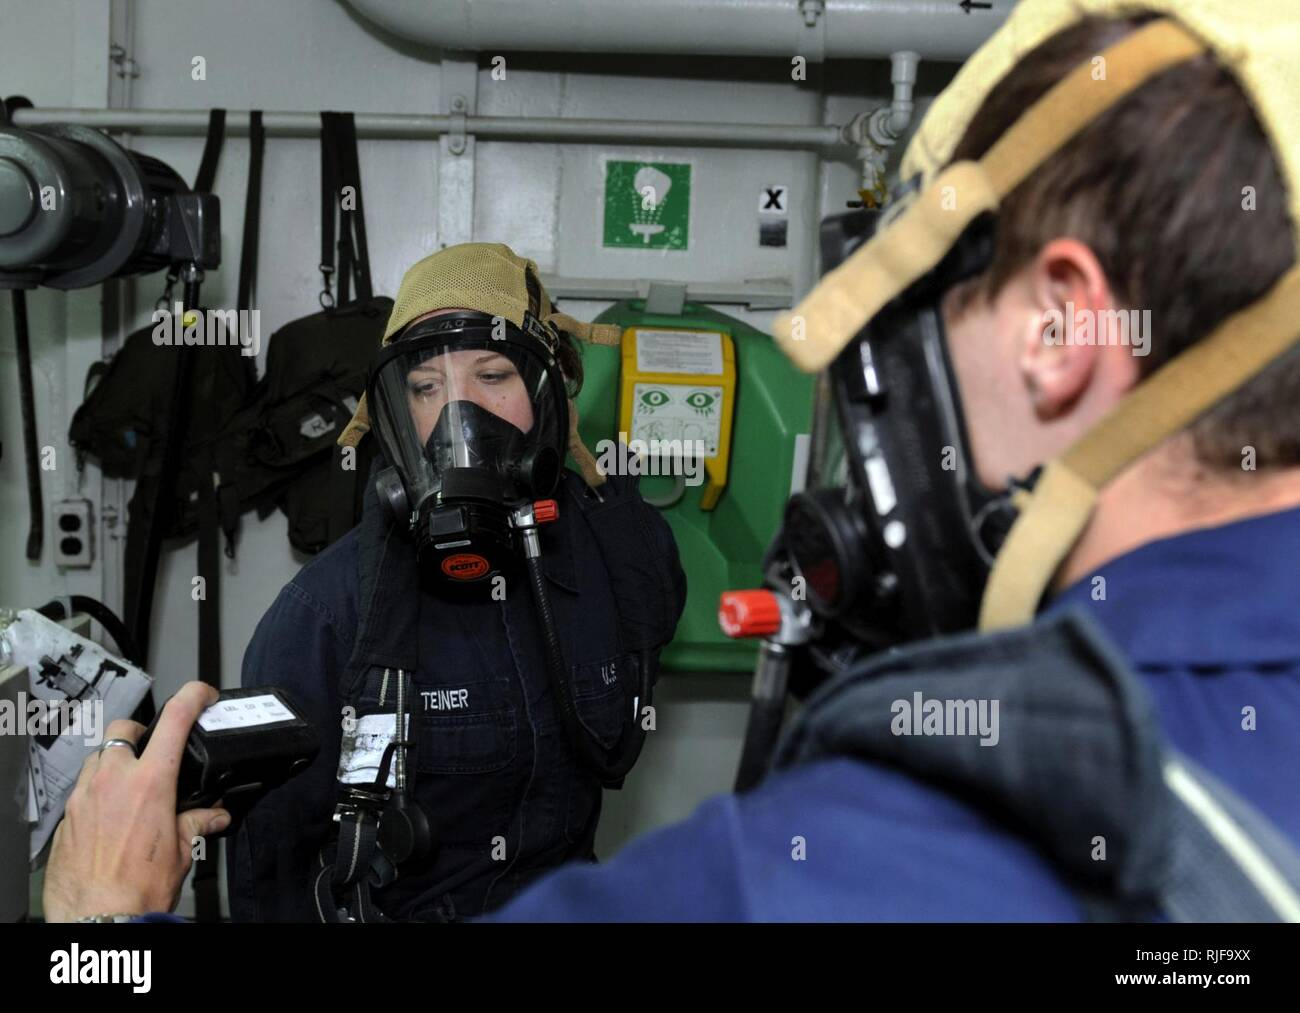 BUSAN, Republic of Korea (Aug. 25, 2009) Machinist's Mate Fireman Tara Steiner and Hull Maintenance Technician 2nd Class Christopher Leddy, flying squad rapid responders aboard the amphibious command ship USS Blue Ridge (LCC 19), take atmosphere readings during a toxic gas drill. - Stock Image